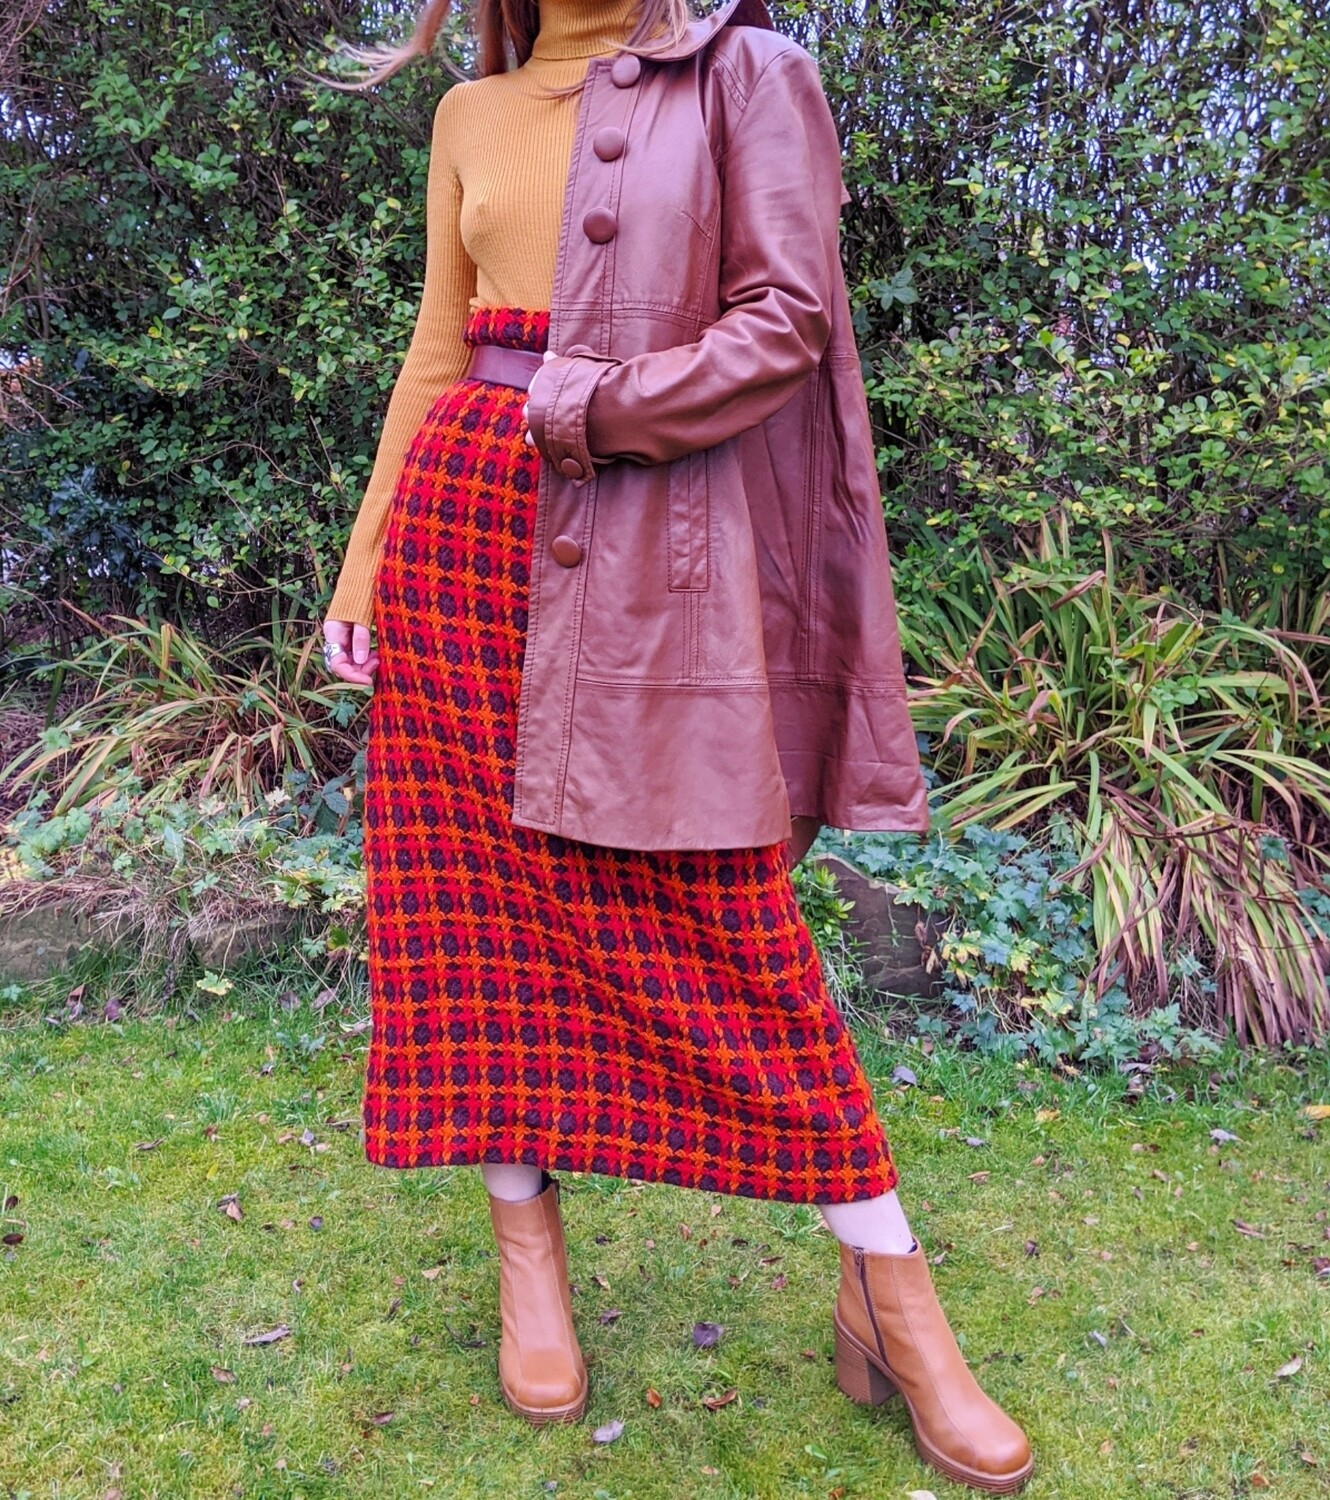 VINTAGE 1970'S BROWN & ORANGE KNIT SKIRT